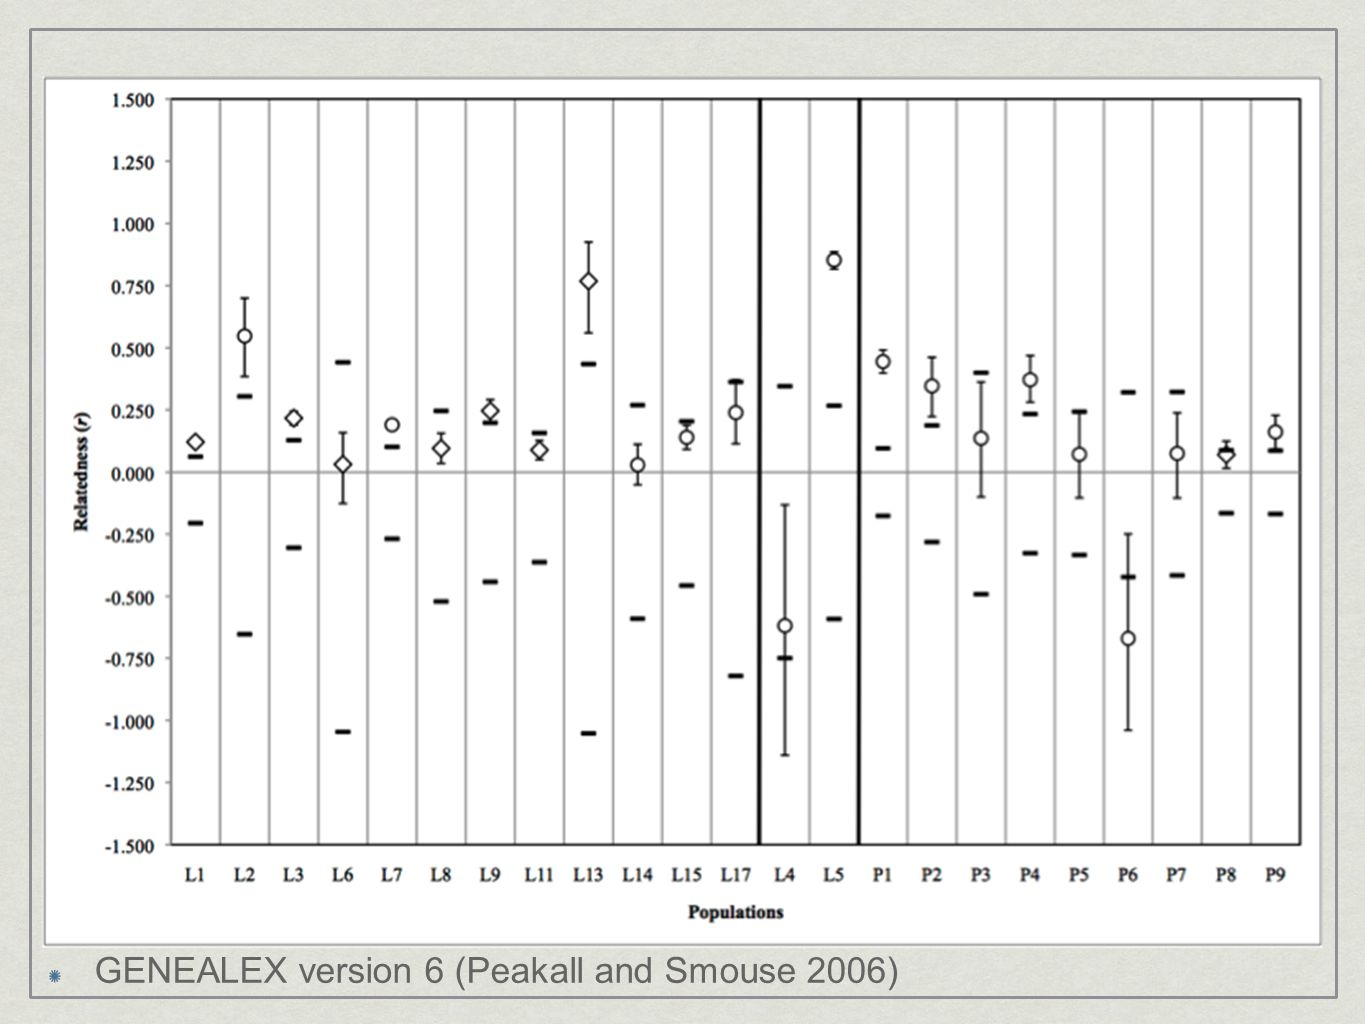 GENEALEX version 6 (Peakall and Smouse 2006)